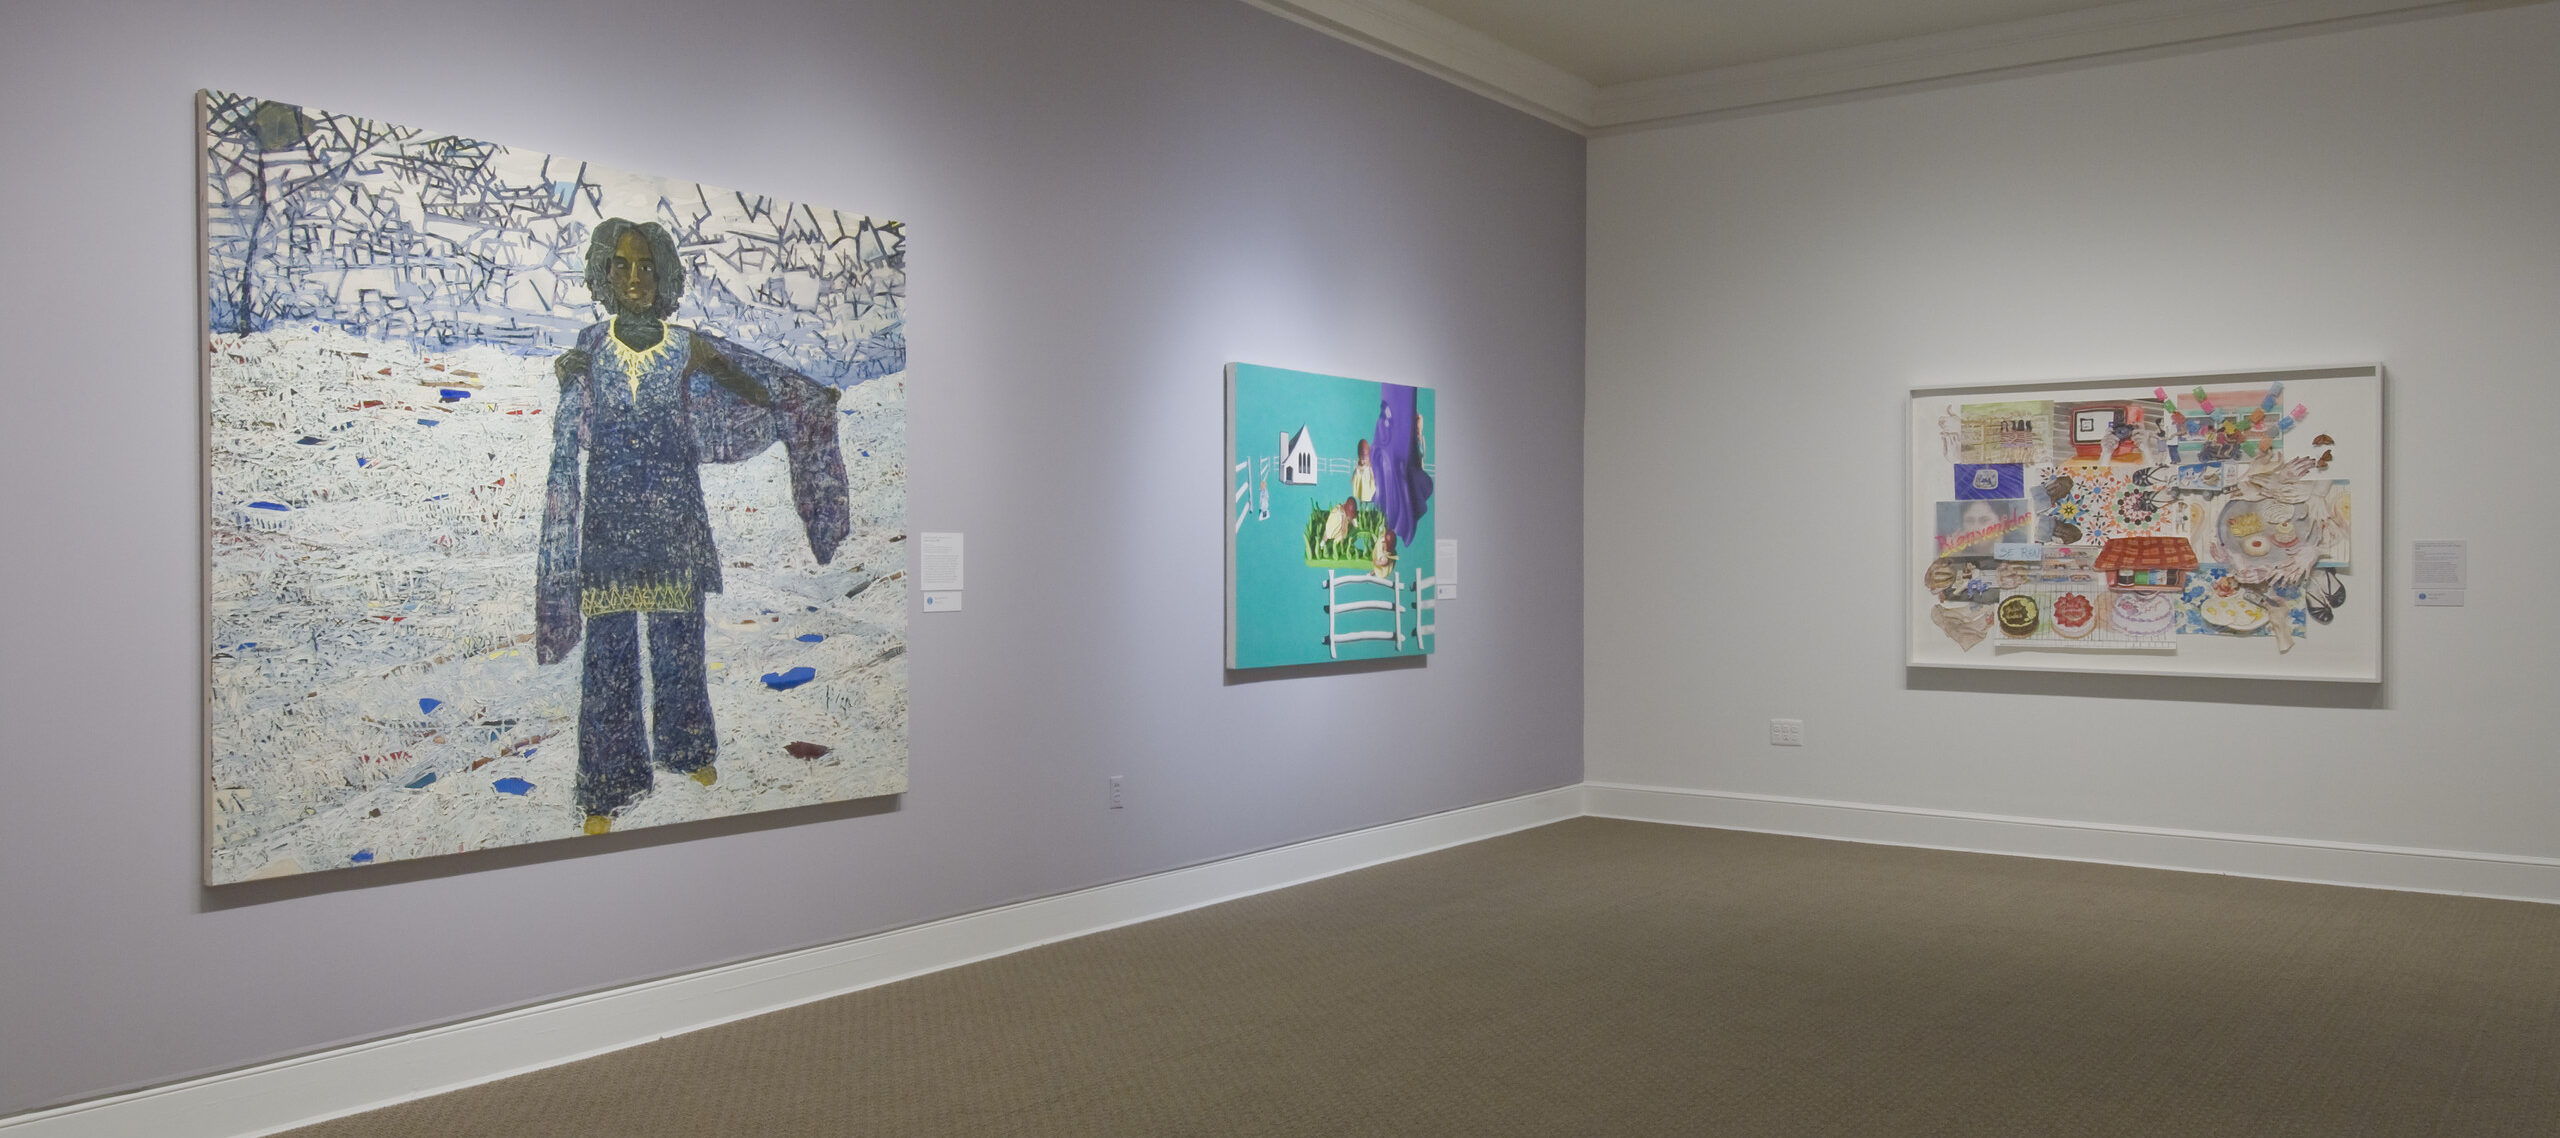 Two large paintings hang on a lavender wall. In the first, a dark-skinned woman stands in a white landscape, and in the other, a fence, house, and large birds float on a solid turquoise background. On the other white wall is an abstract multimedia work with houses, cakes, and patterns.